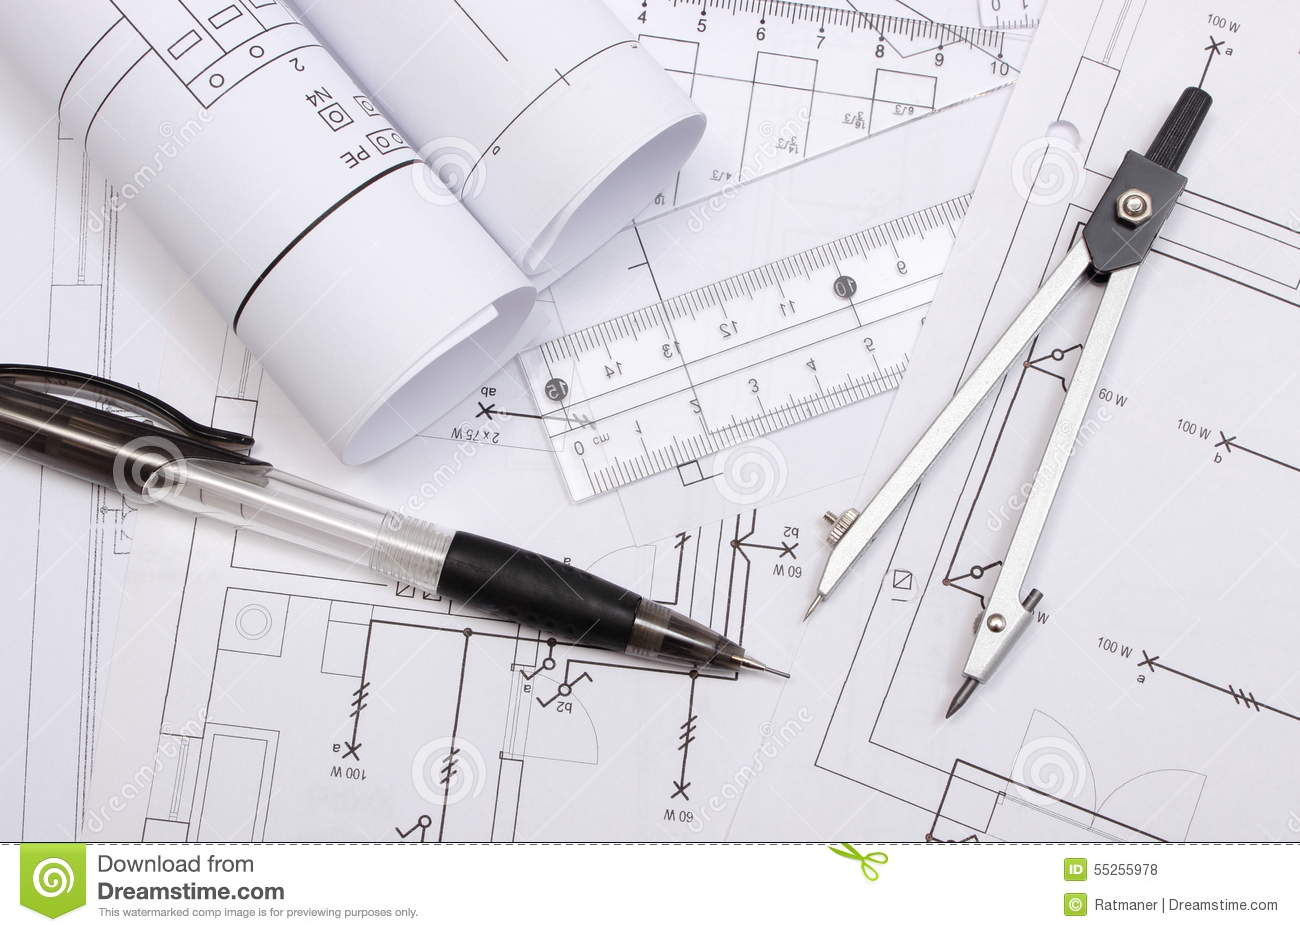 rolled electrical diagrams and accessories for drawing stock photo manufacturing diagram rolled electrical diagrams and accessories for drawing